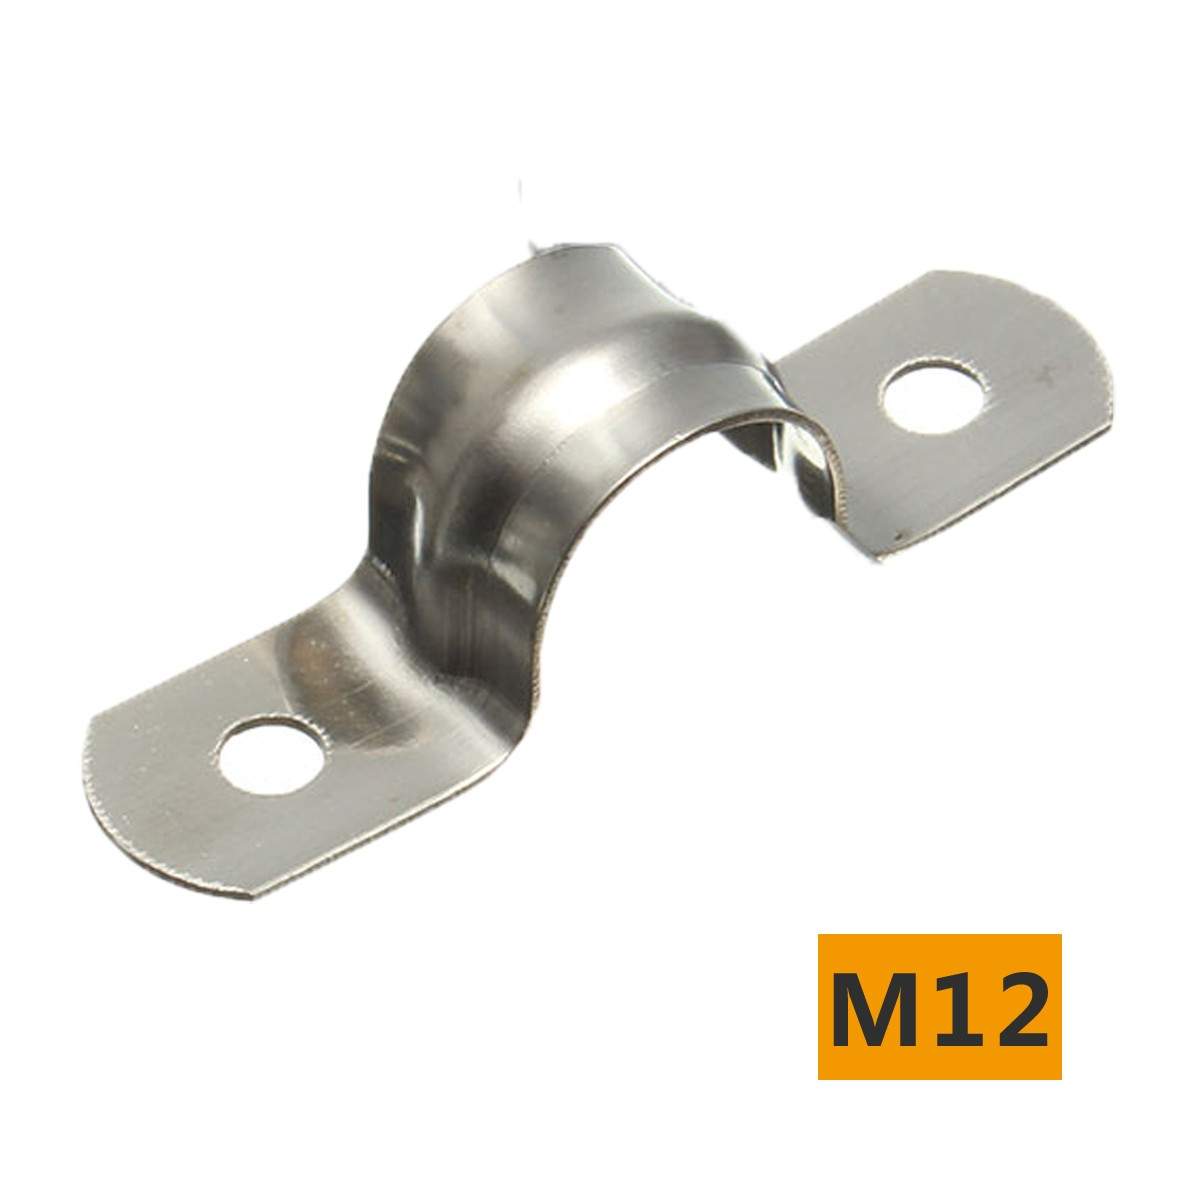 Stainless steel plumbing tube saddle pipe clip